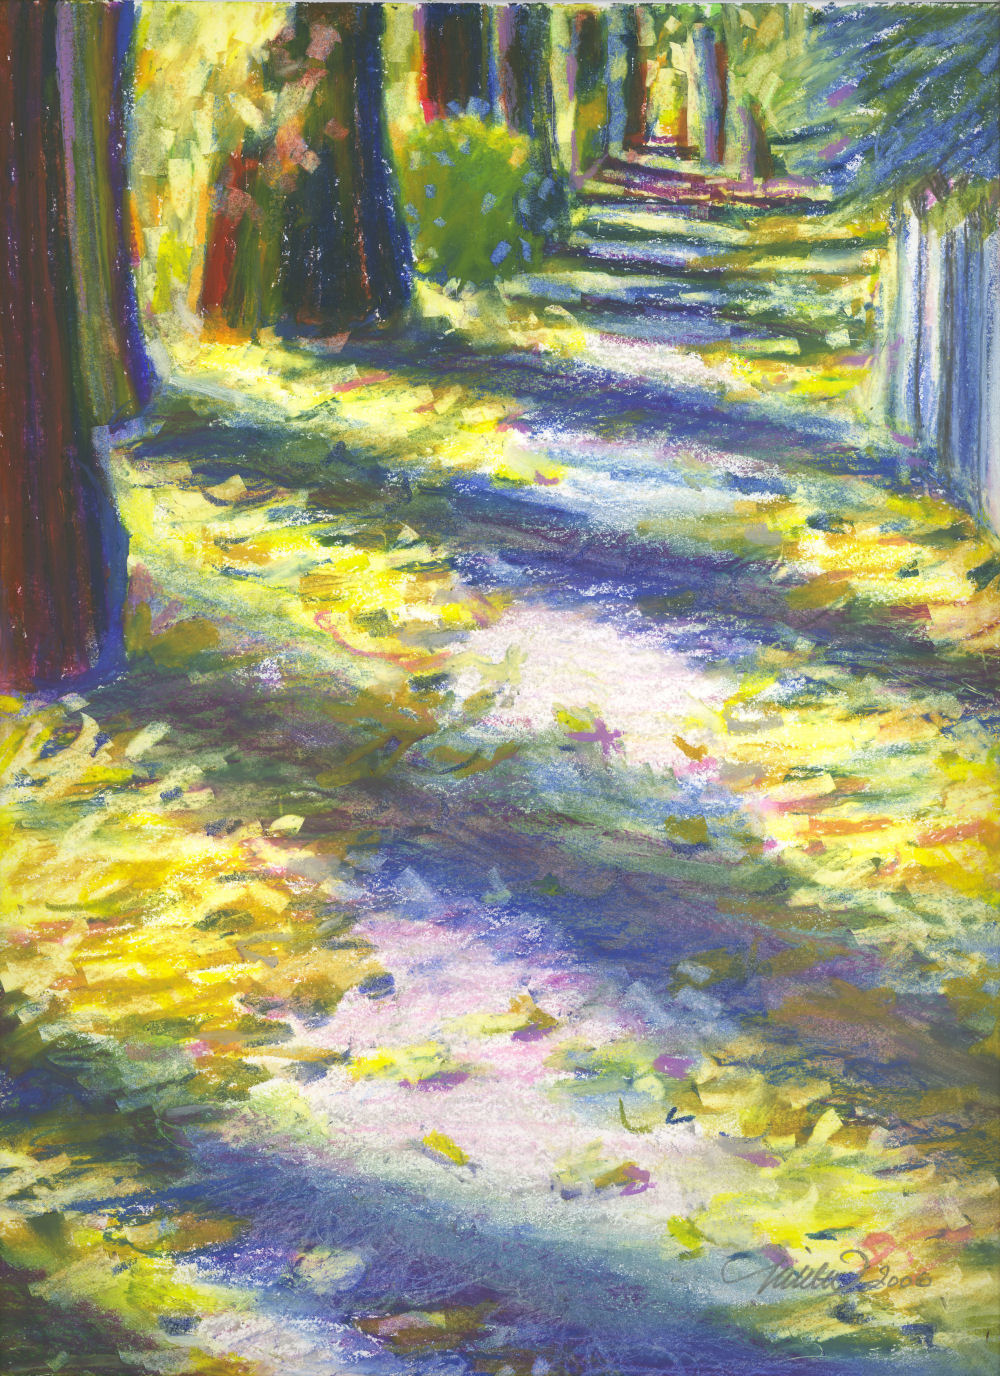 Calgary In September - Elm tree leaves, neighborhood by Memorial Drive, Calgary, Alberta, Canada - 14 x 11 inches oil pastels on paper